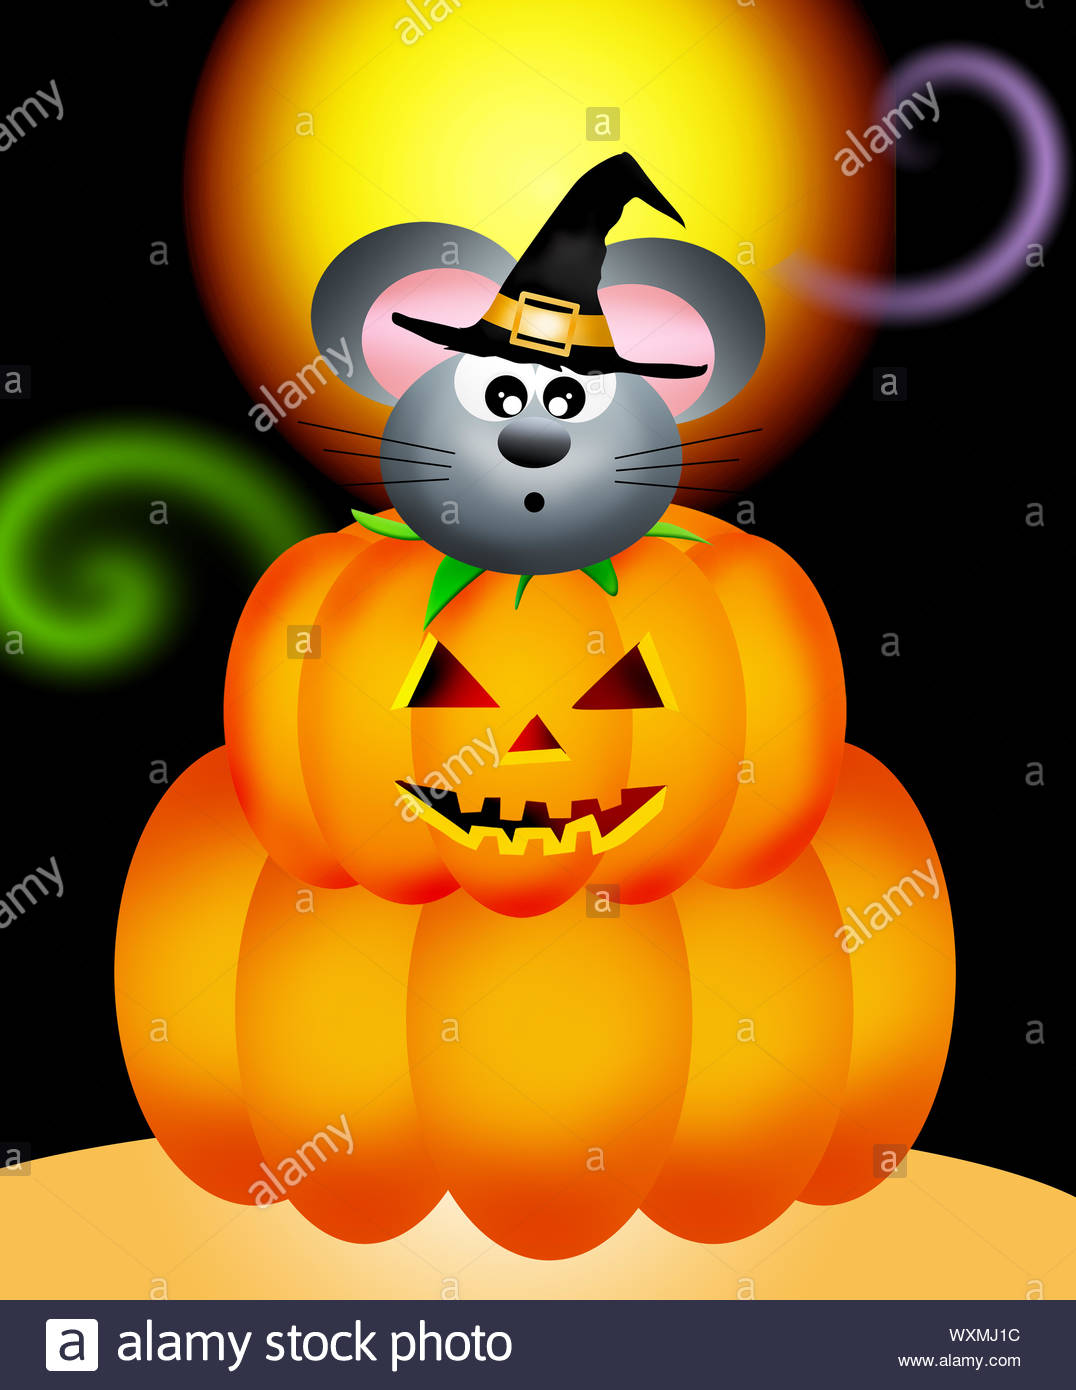 mouse in the pumpkin on halloween WXMJ1C